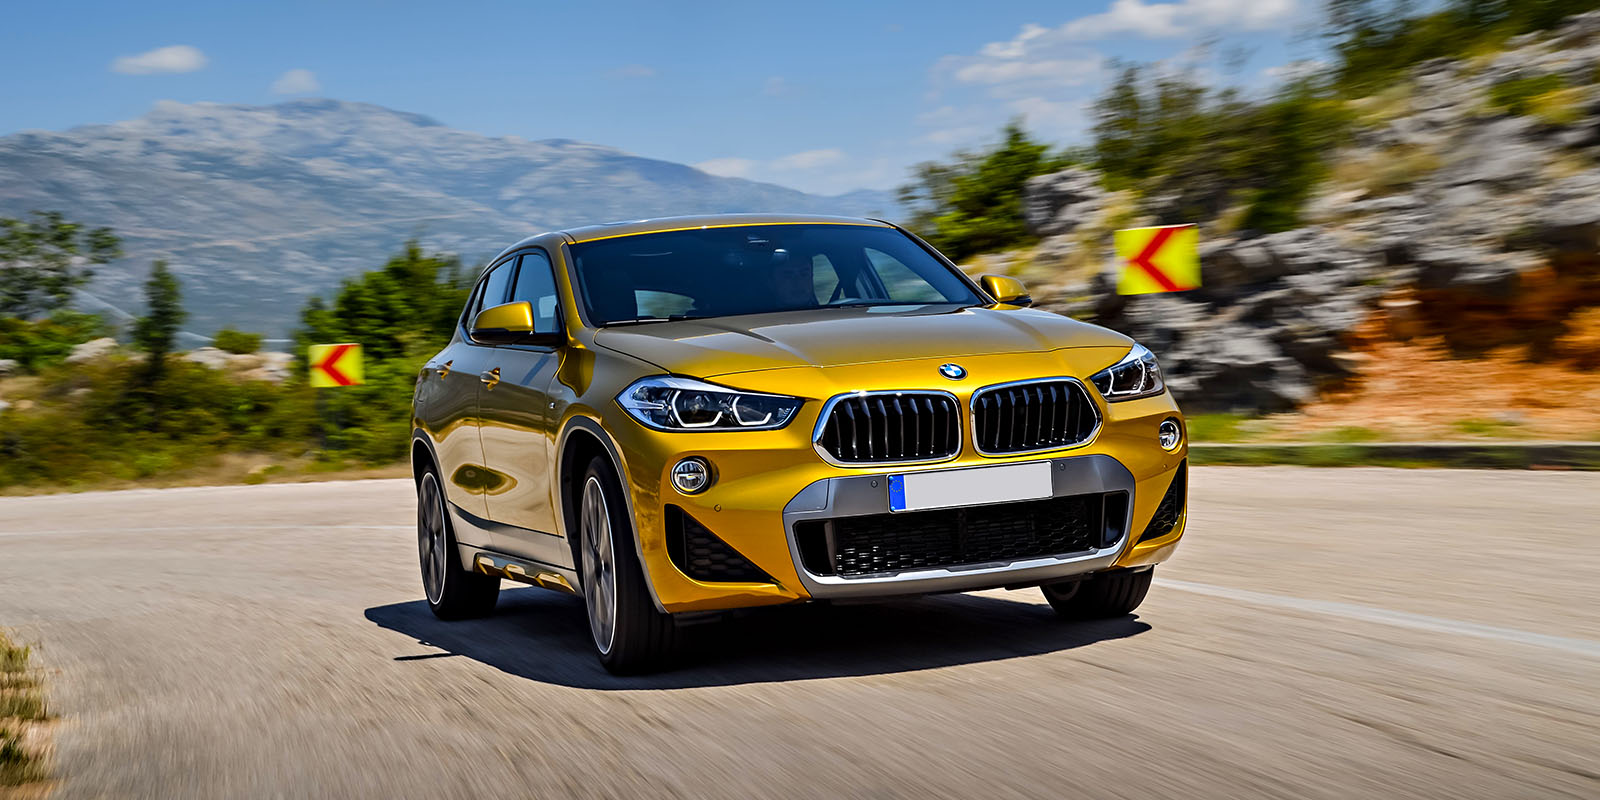 2018 Bmw X2 Suv Price Specs And Release Date Carwow